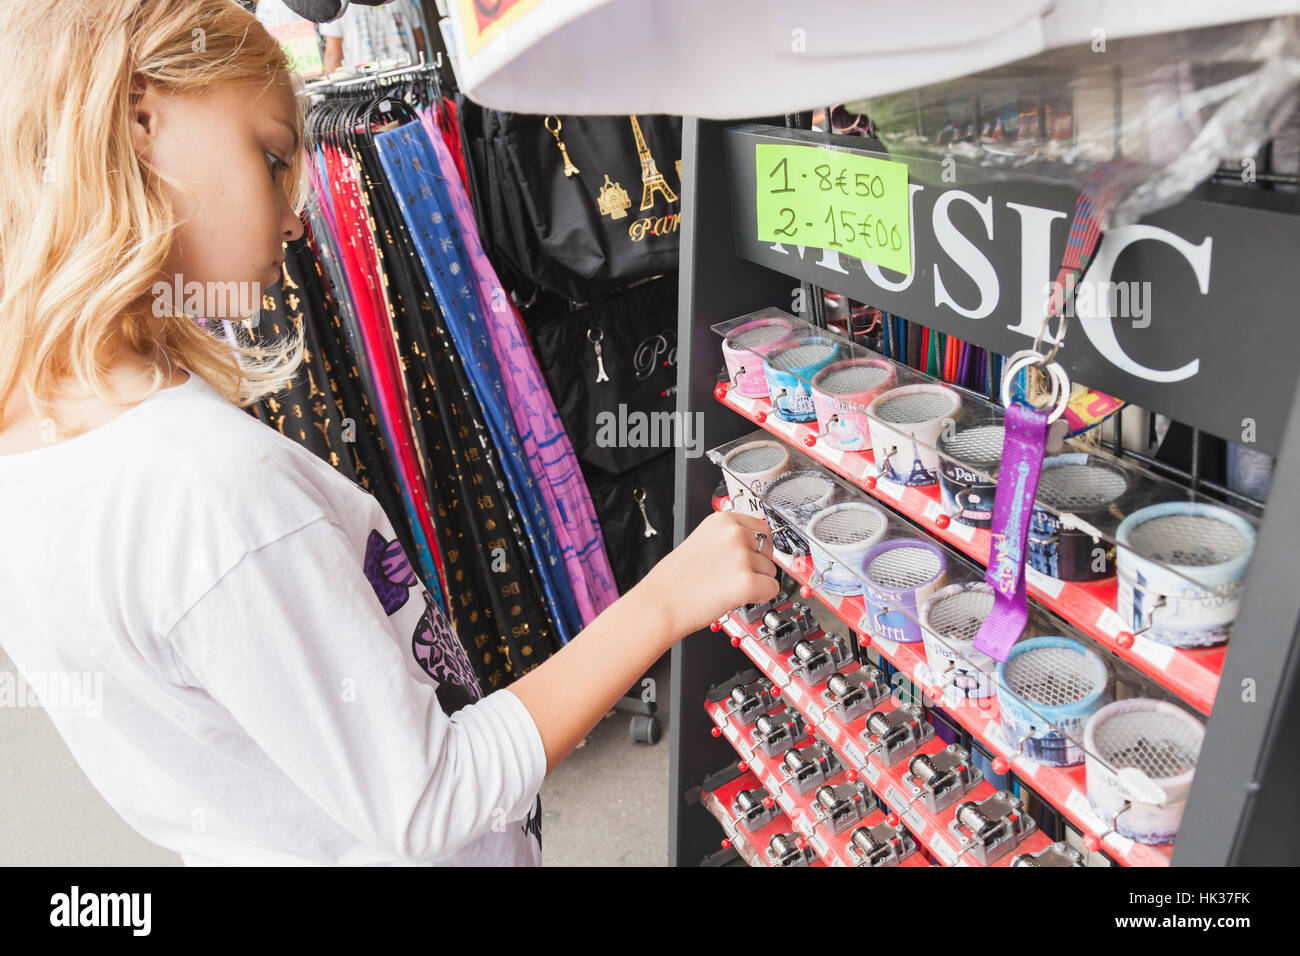 Paris, France - August 11, 2014: Blond Caucasian girl considers souvenirs in small street gift shop. Traditional - Stock Image